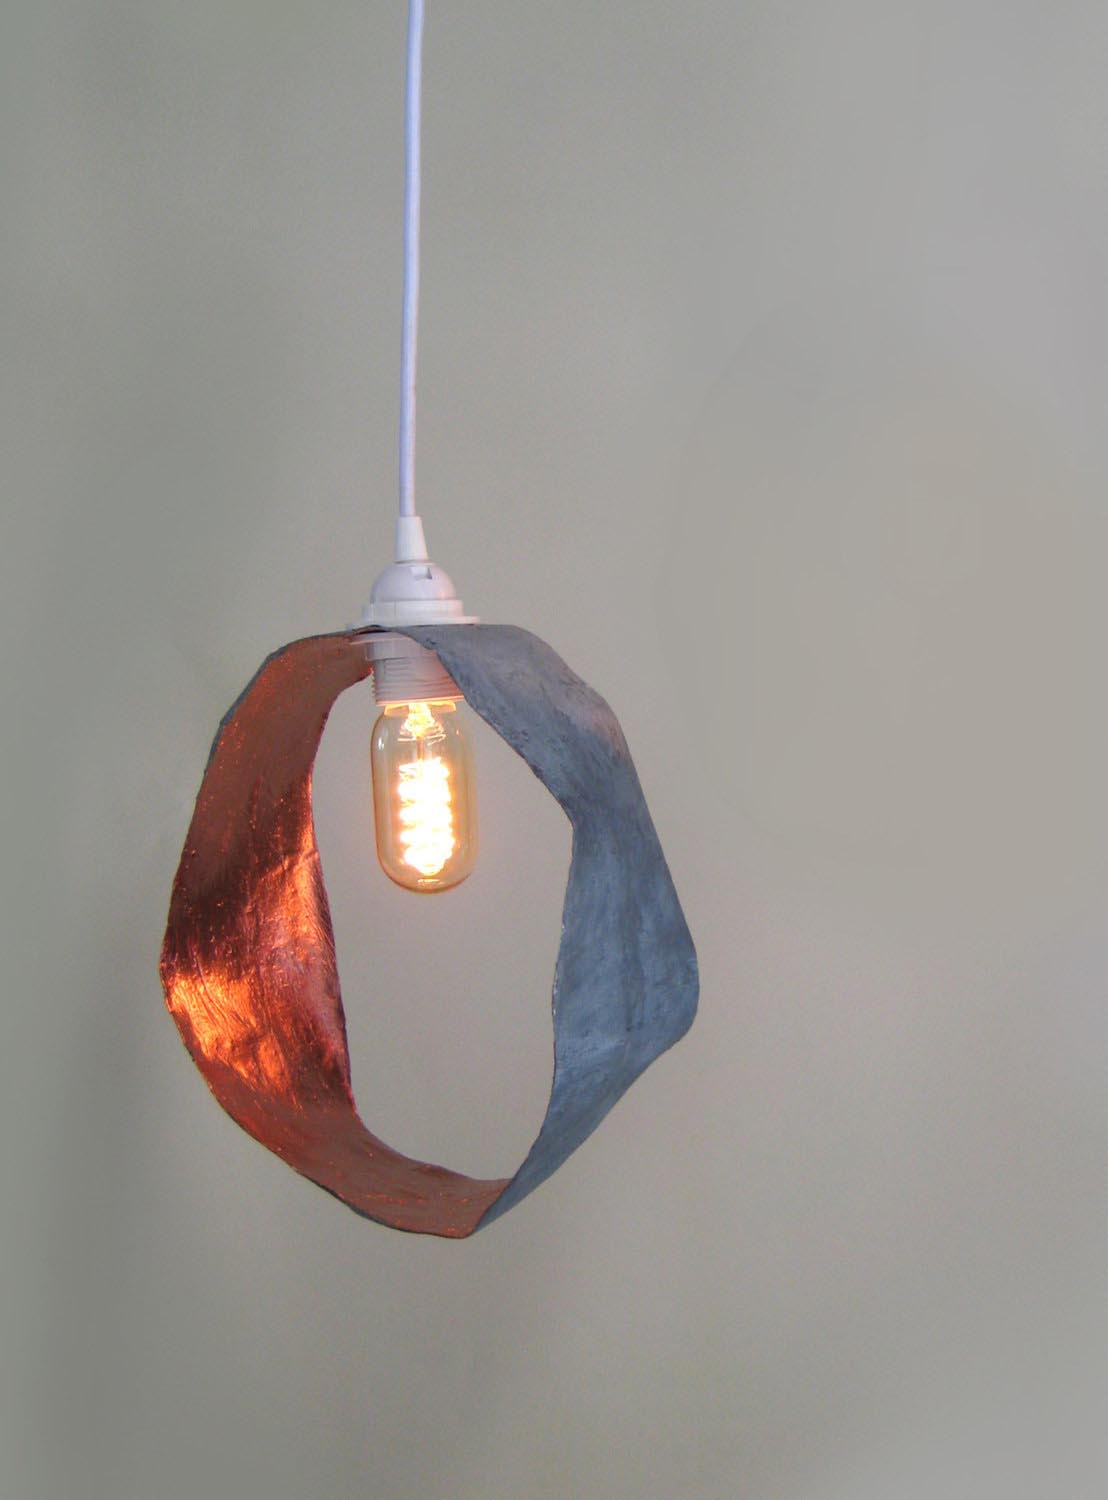 Hammered Copper Light Fixtures